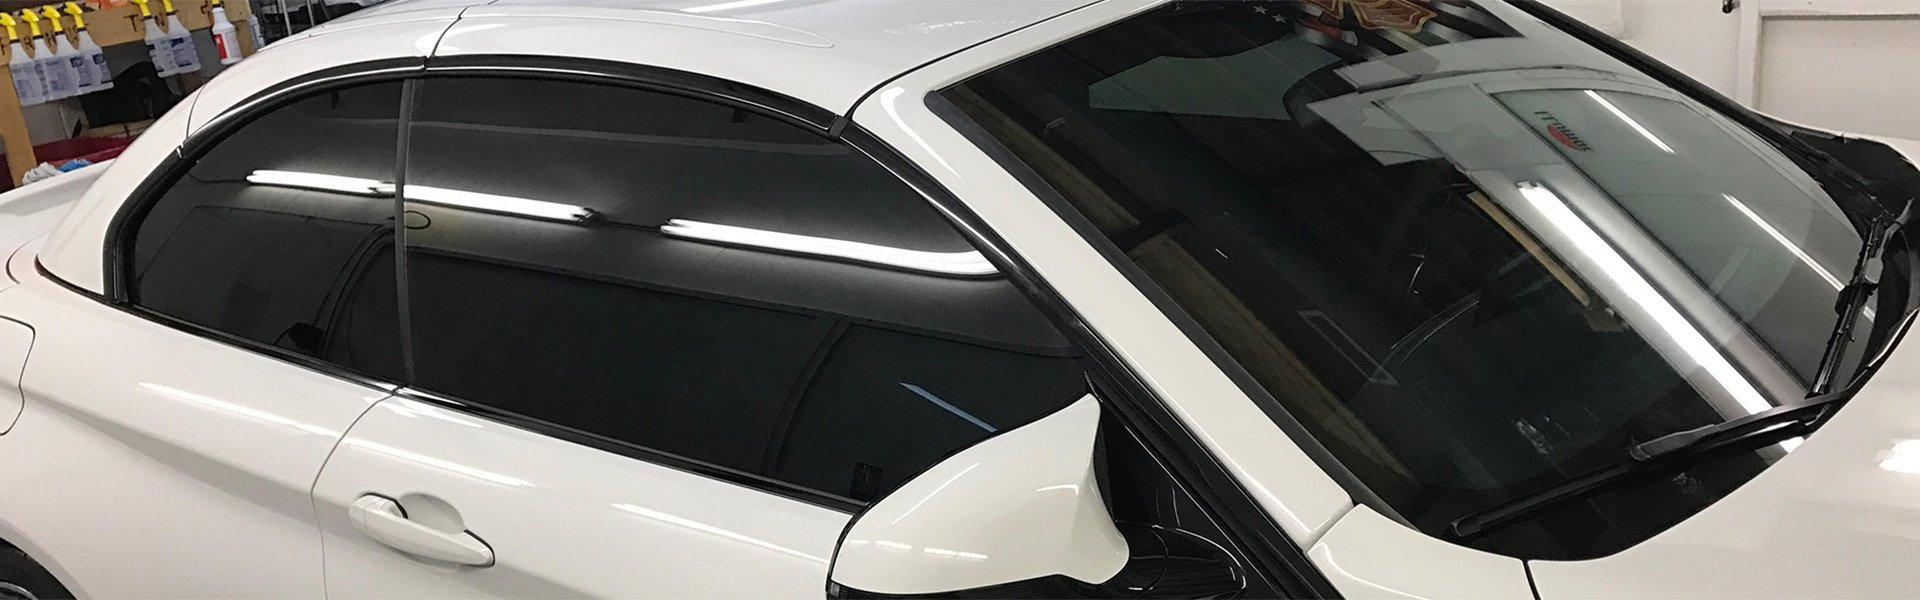 windows tint services for Automotive